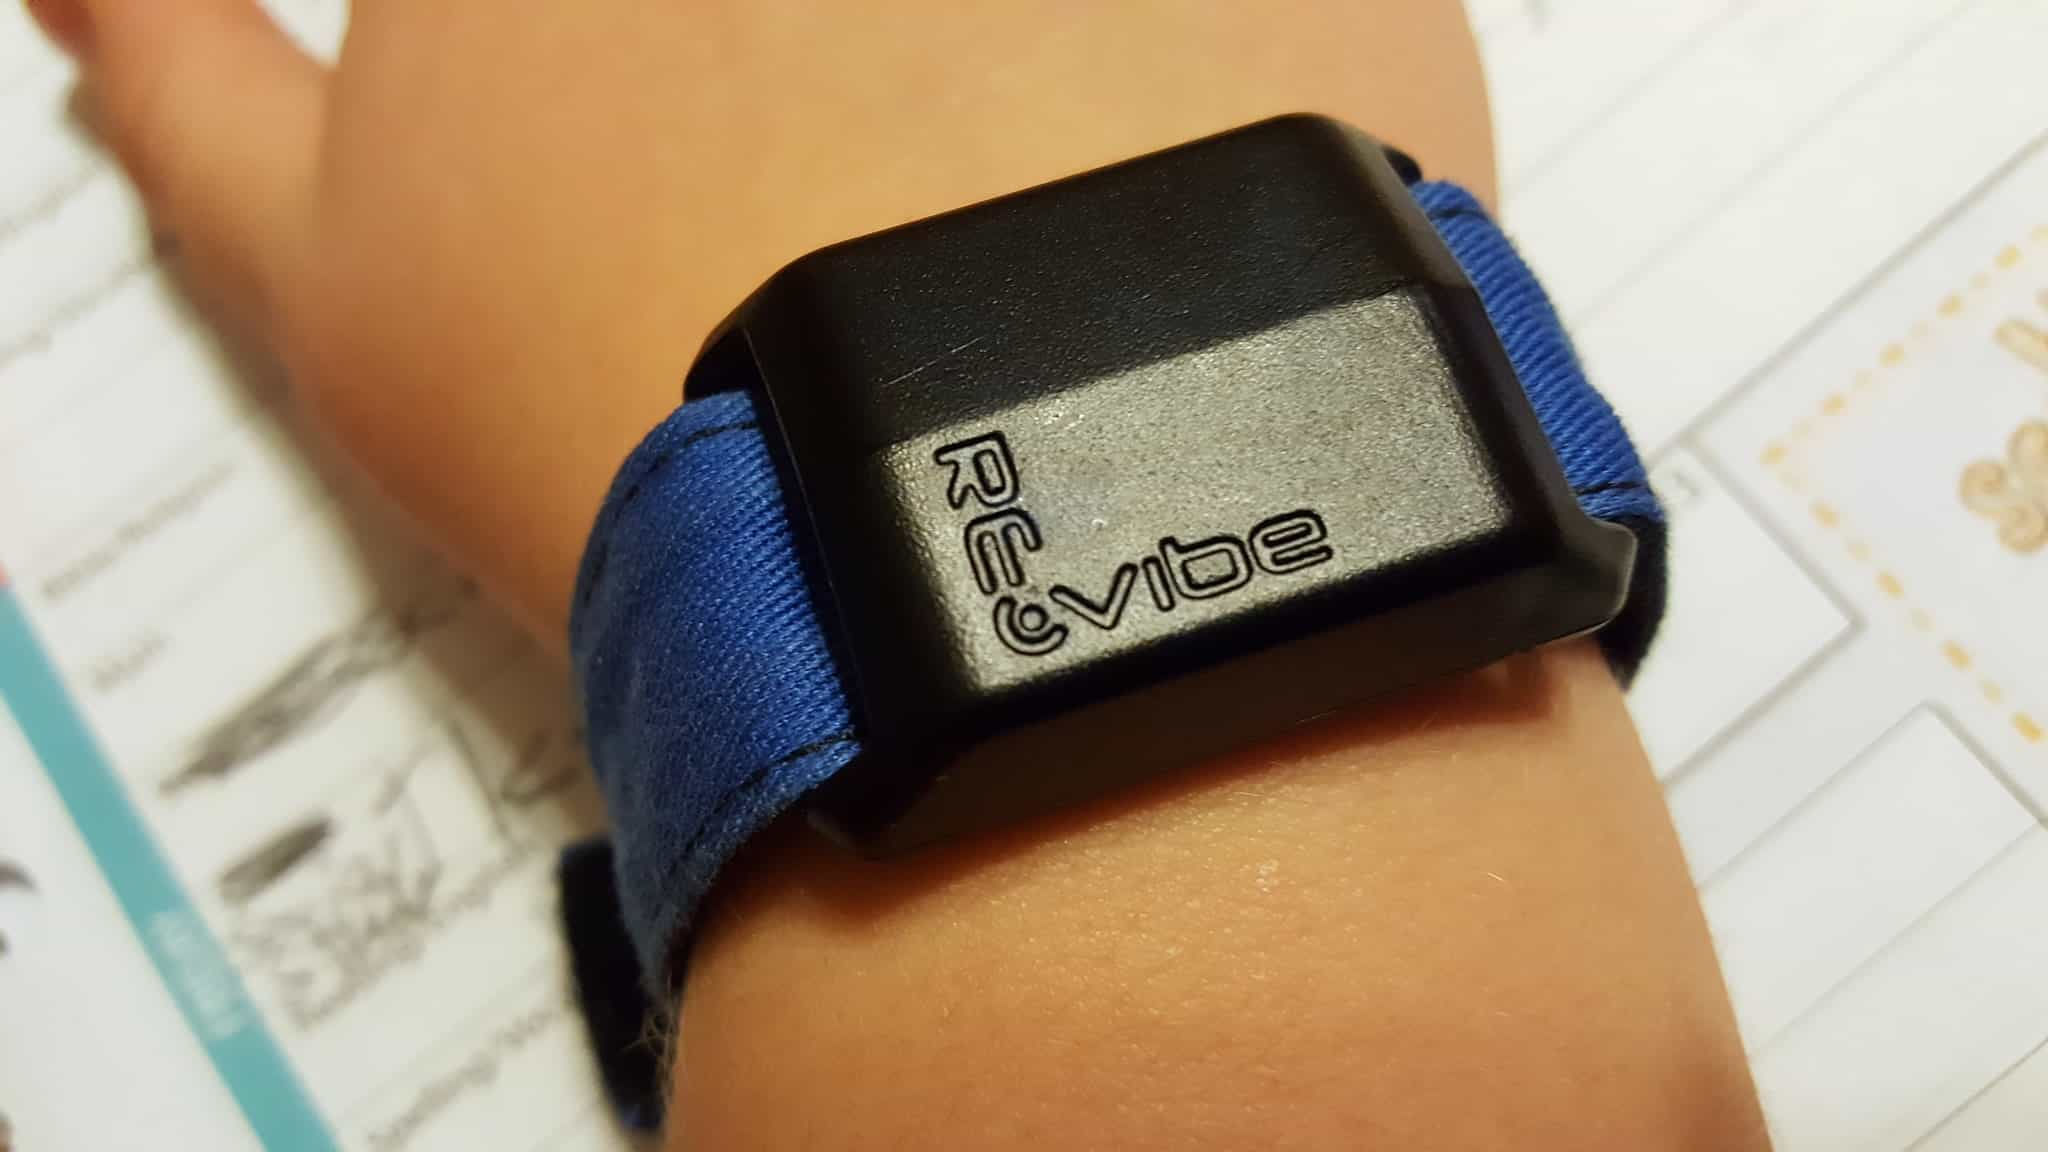 FokusLabs Re-Vibe Wristband for Distracted Students & ADD / ADHD Distraction in School TIPS that Made a Difference